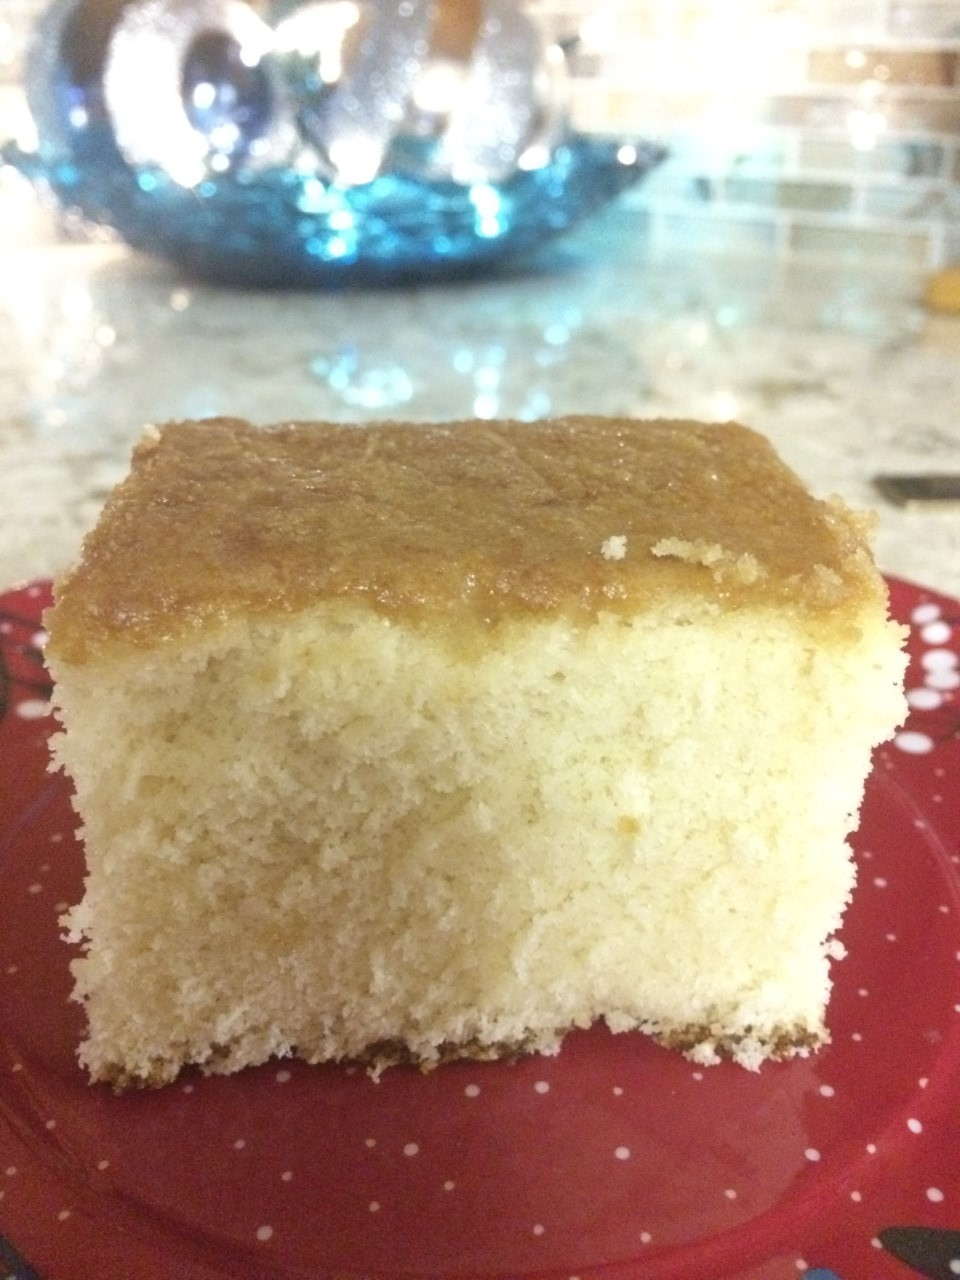 Lazy Daisy Cake without the Frosting